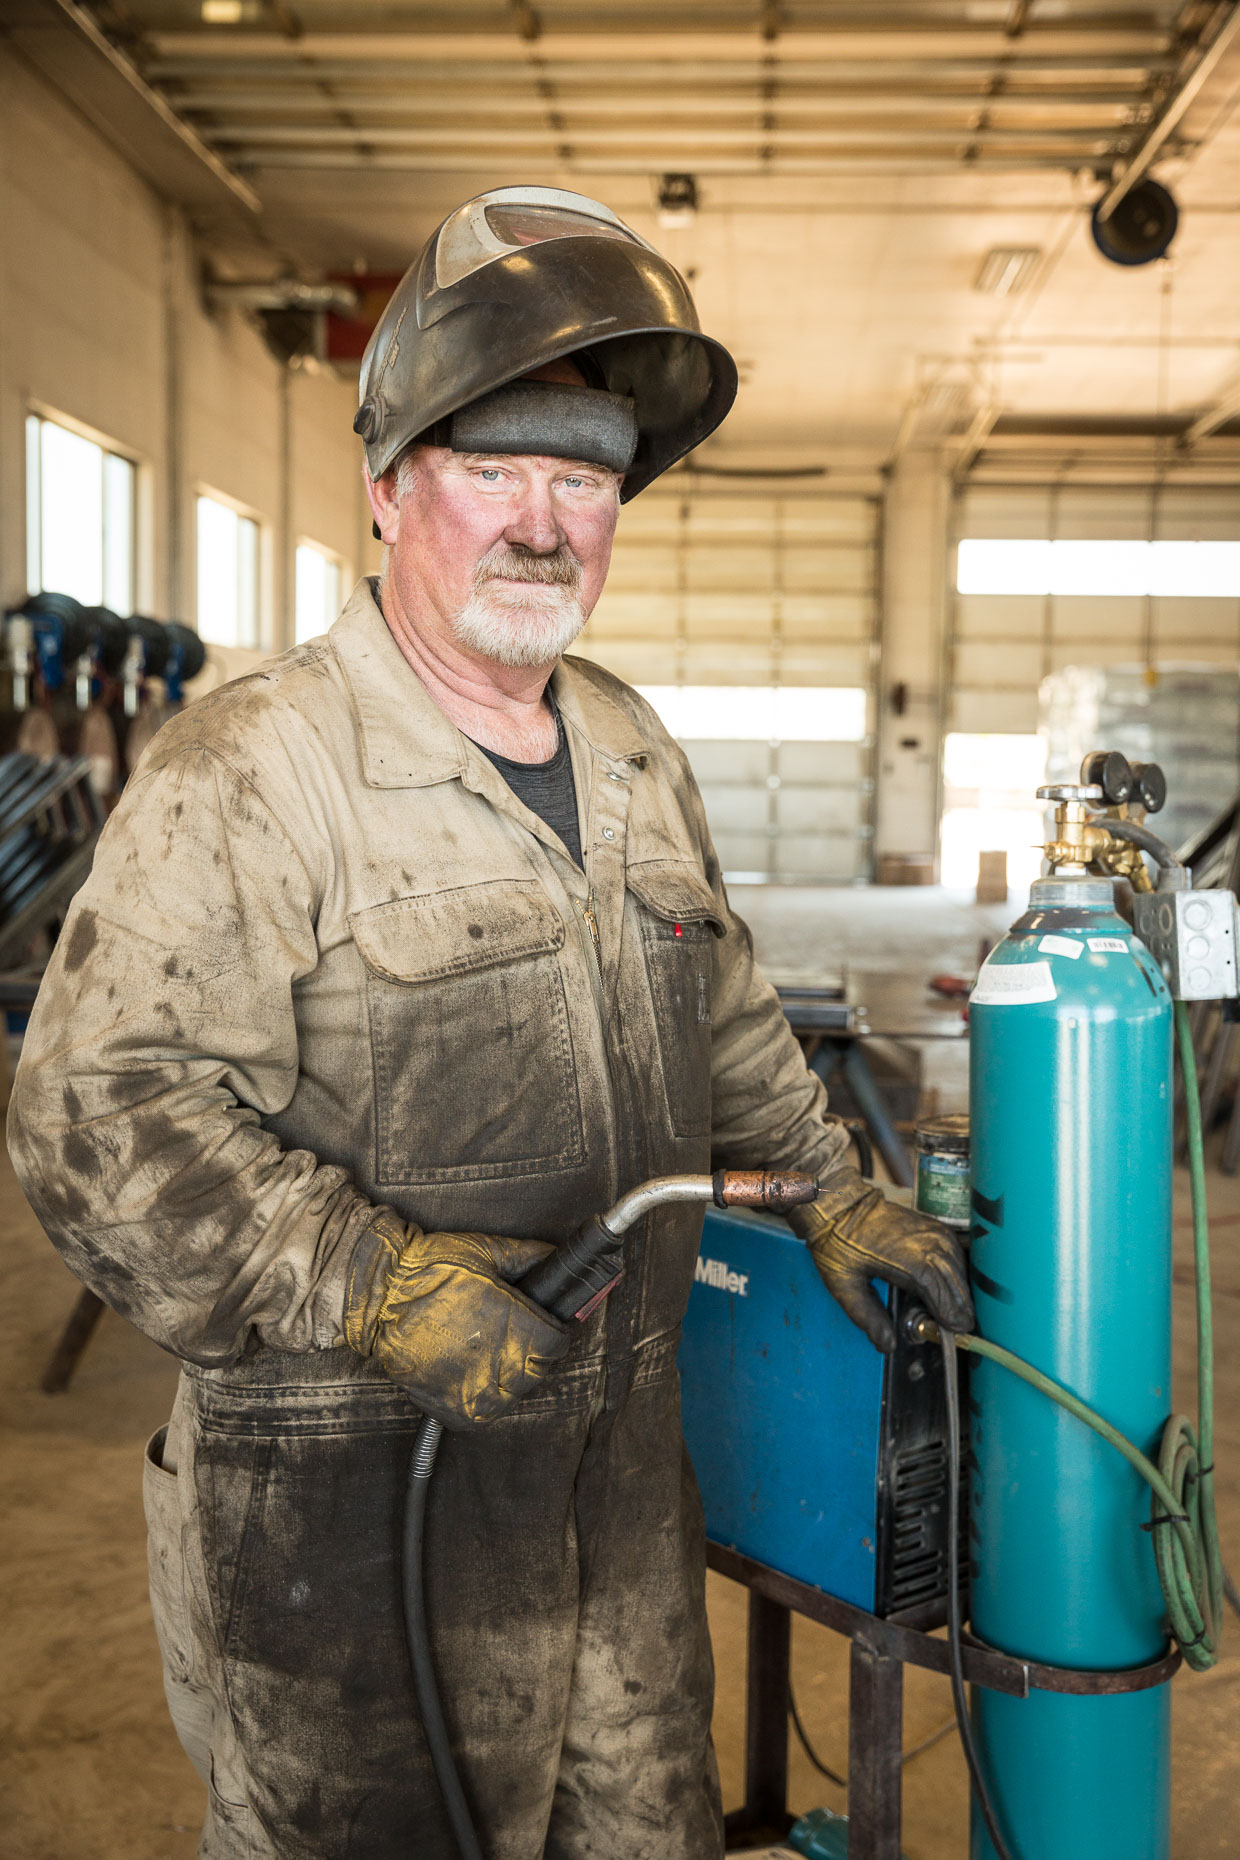 Environmental portrait of welder in workshop.